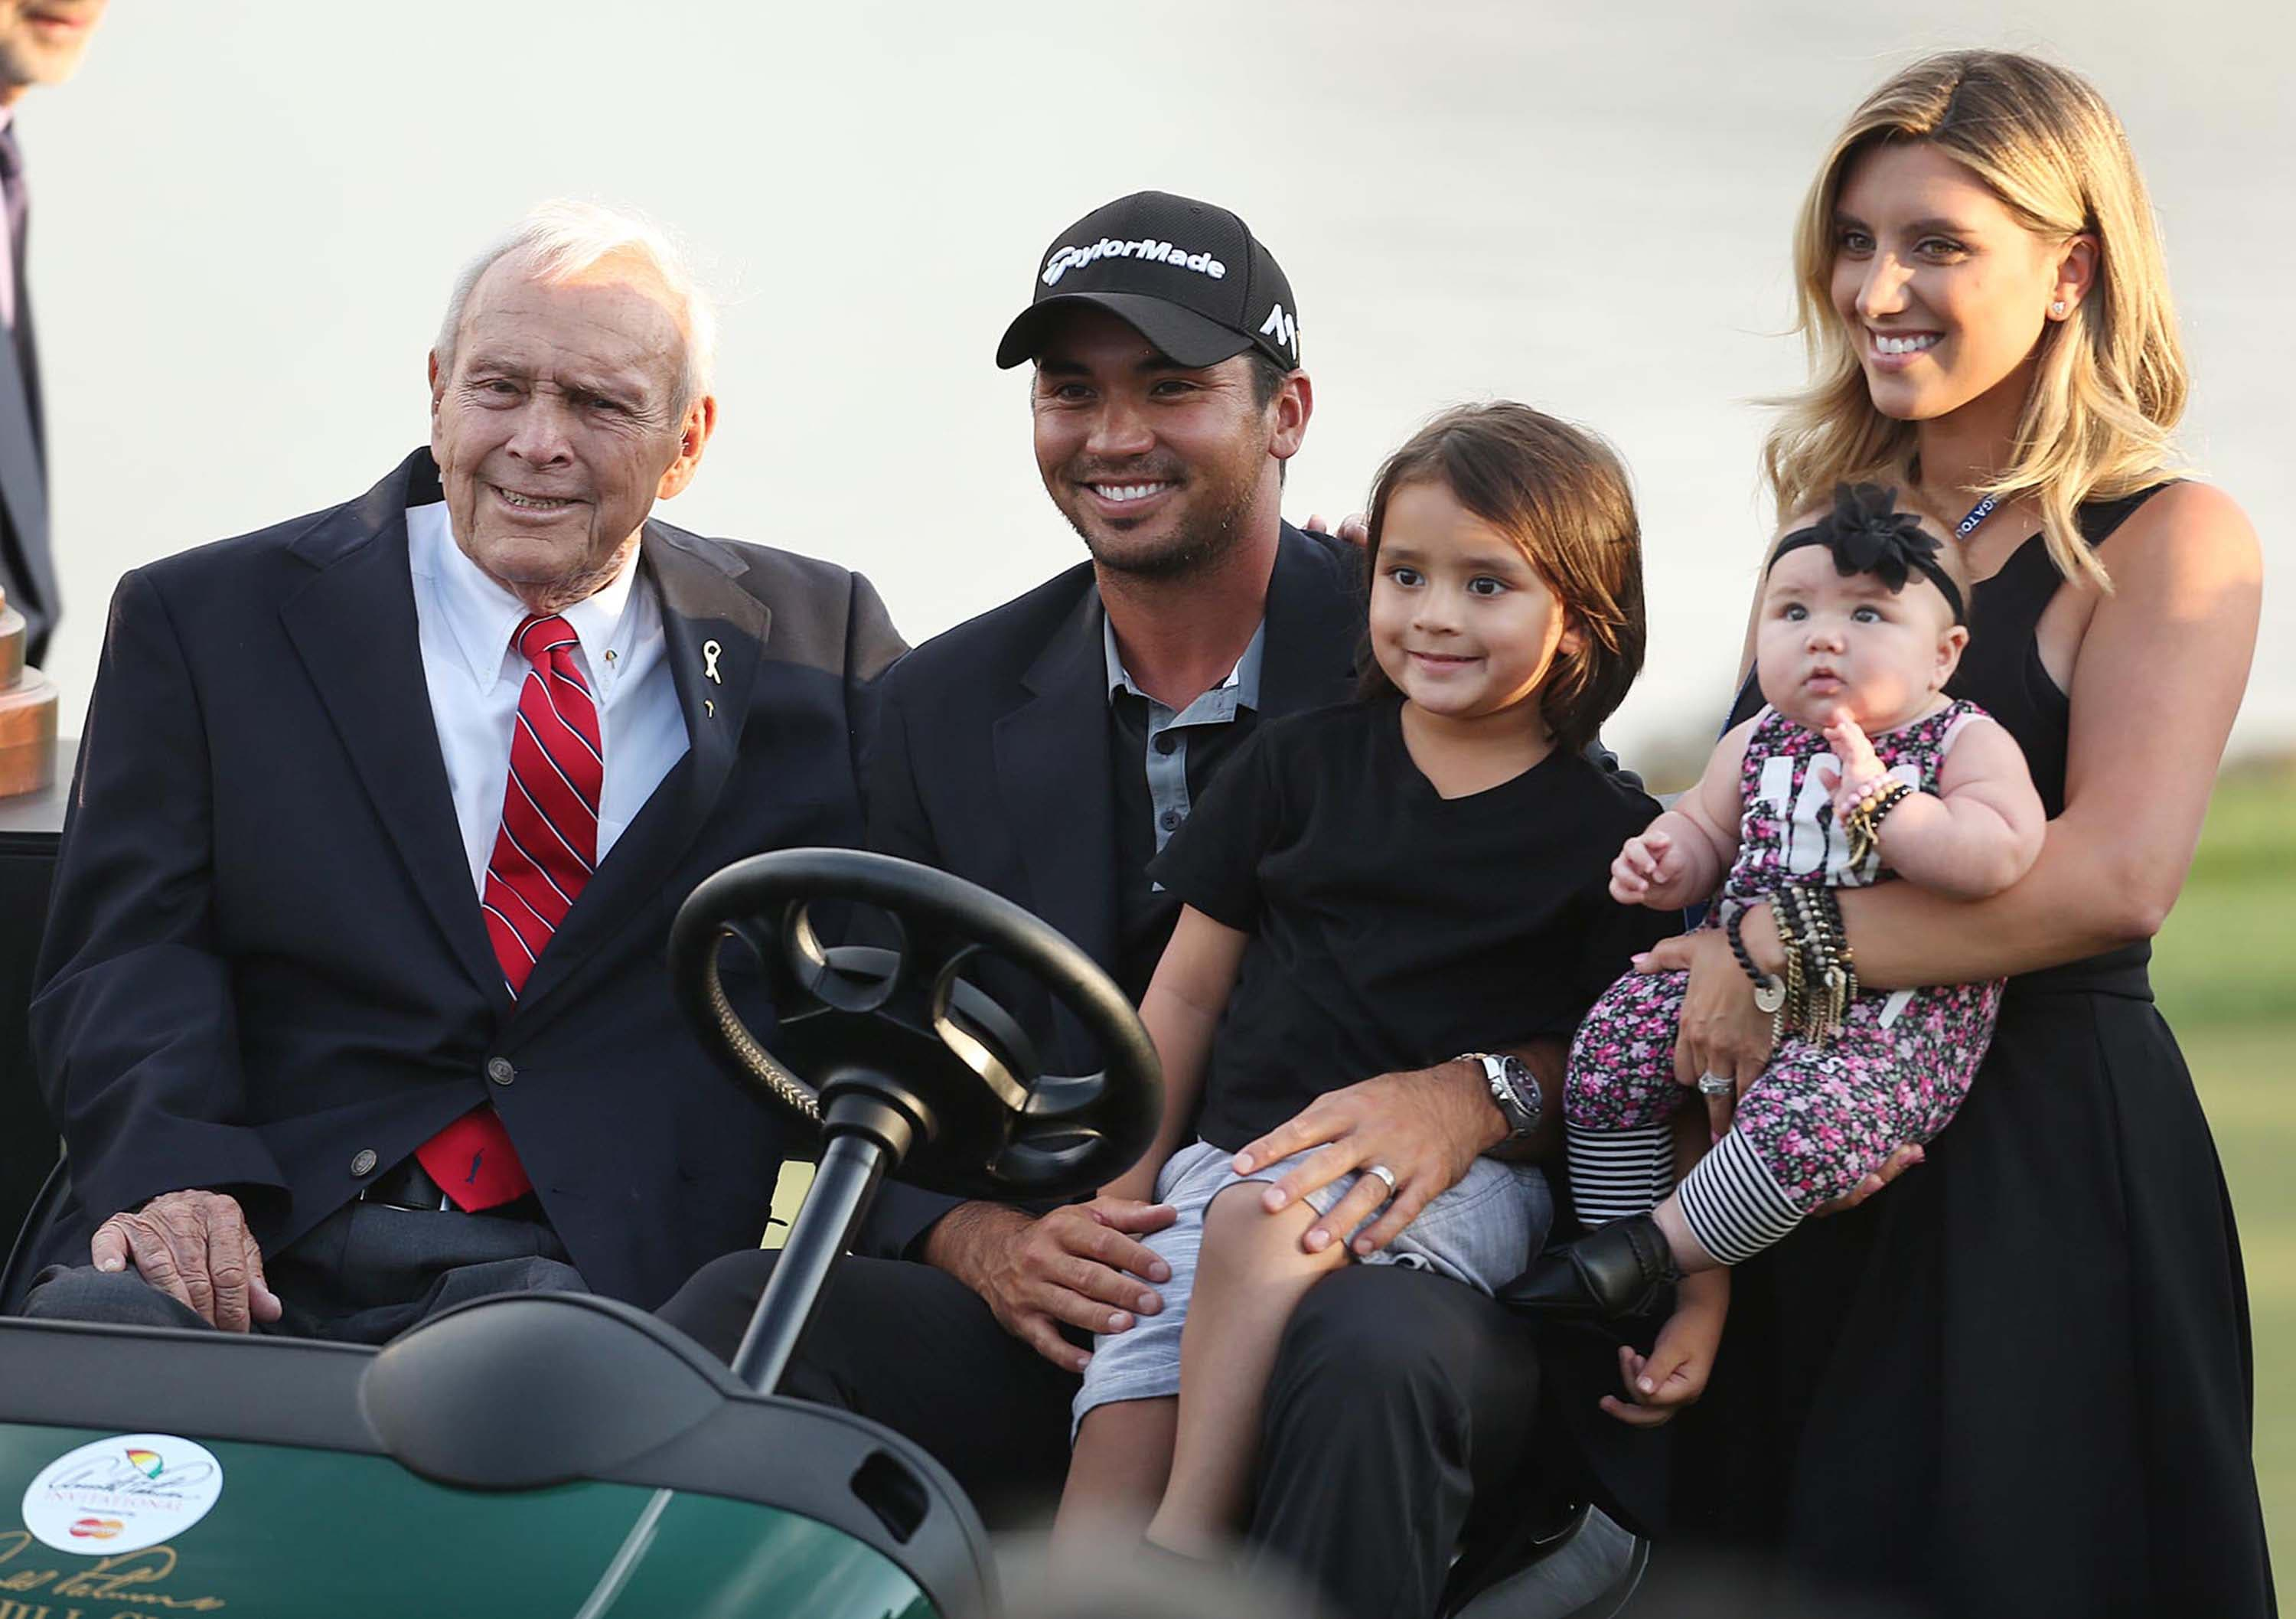 Arnold Palmer and the Day family